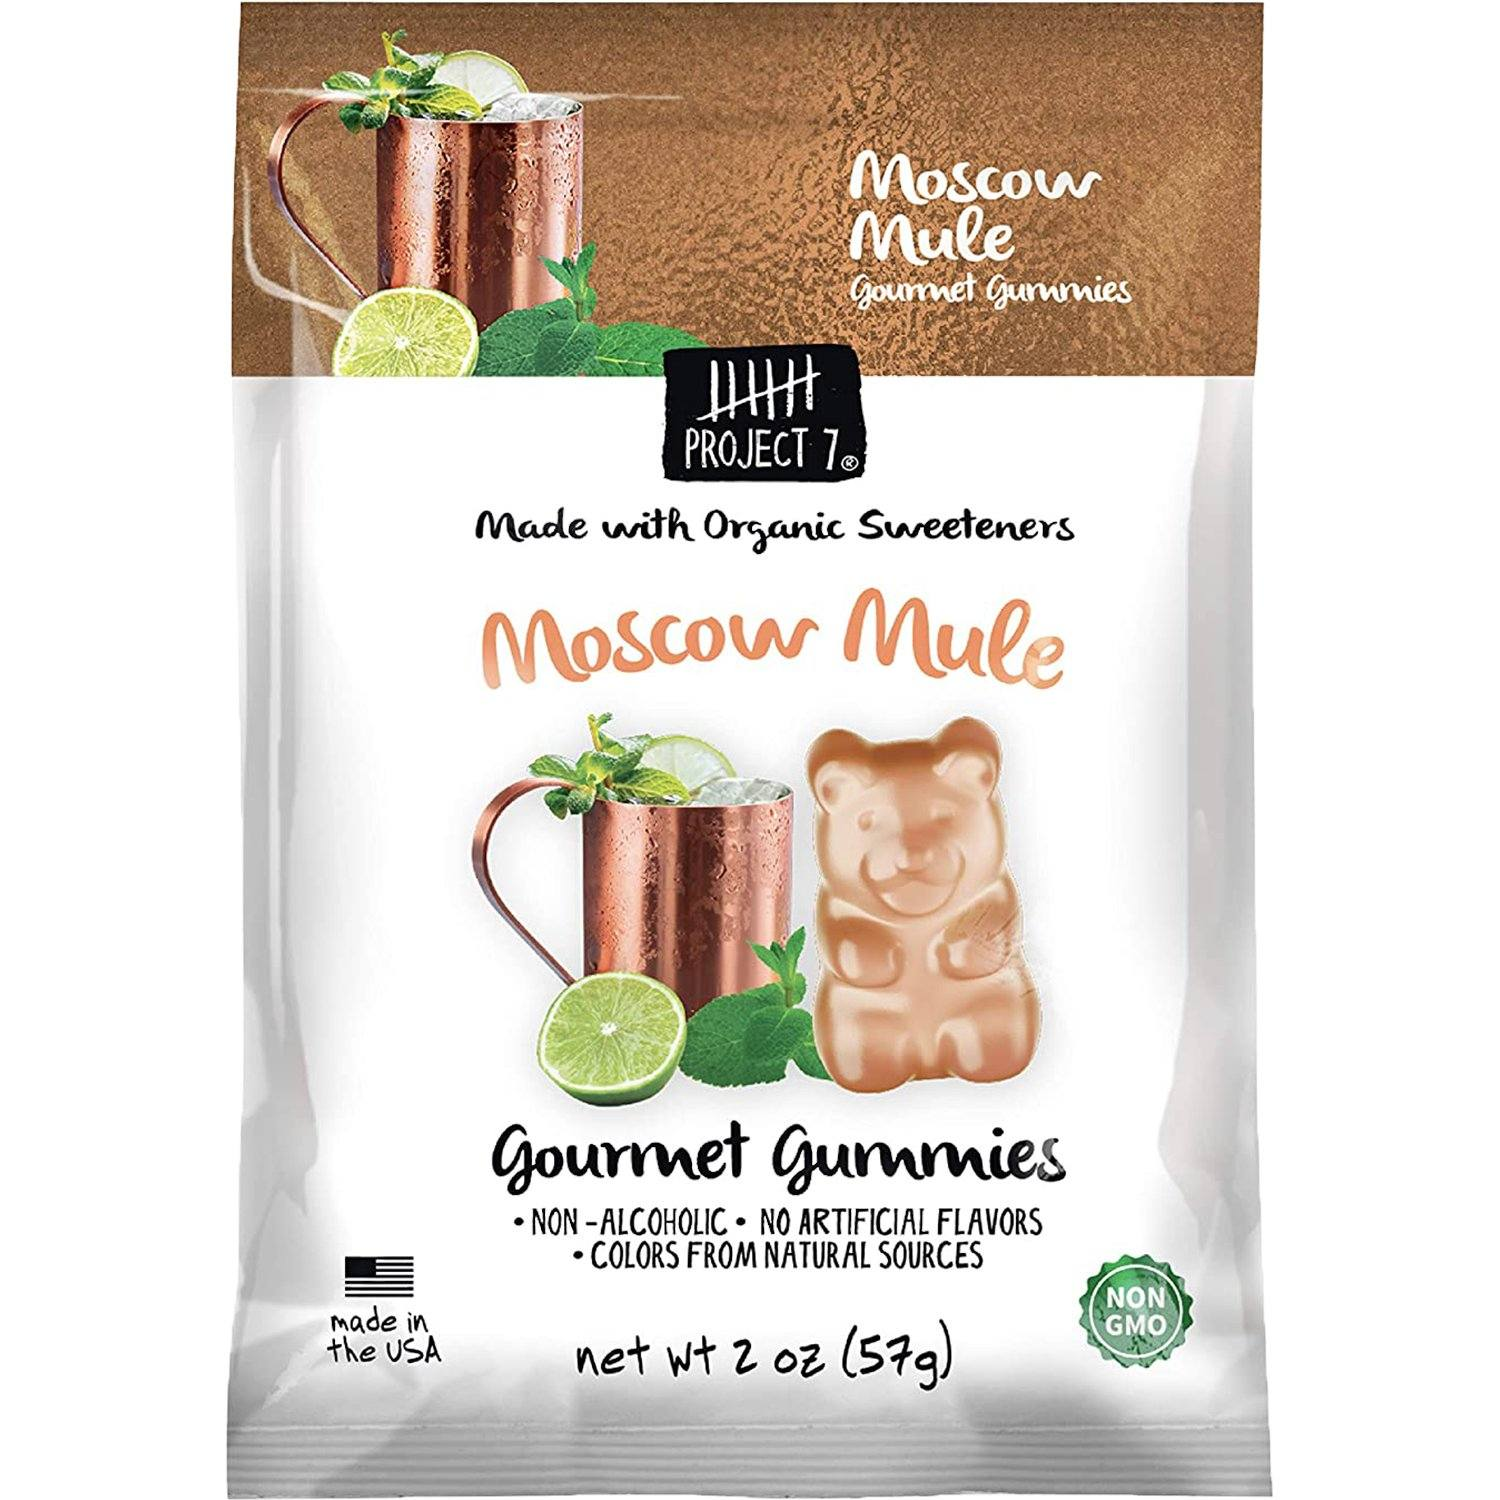 Project 7 Gourmet Gummies Project 7 Moscow Mule 2 Ounce